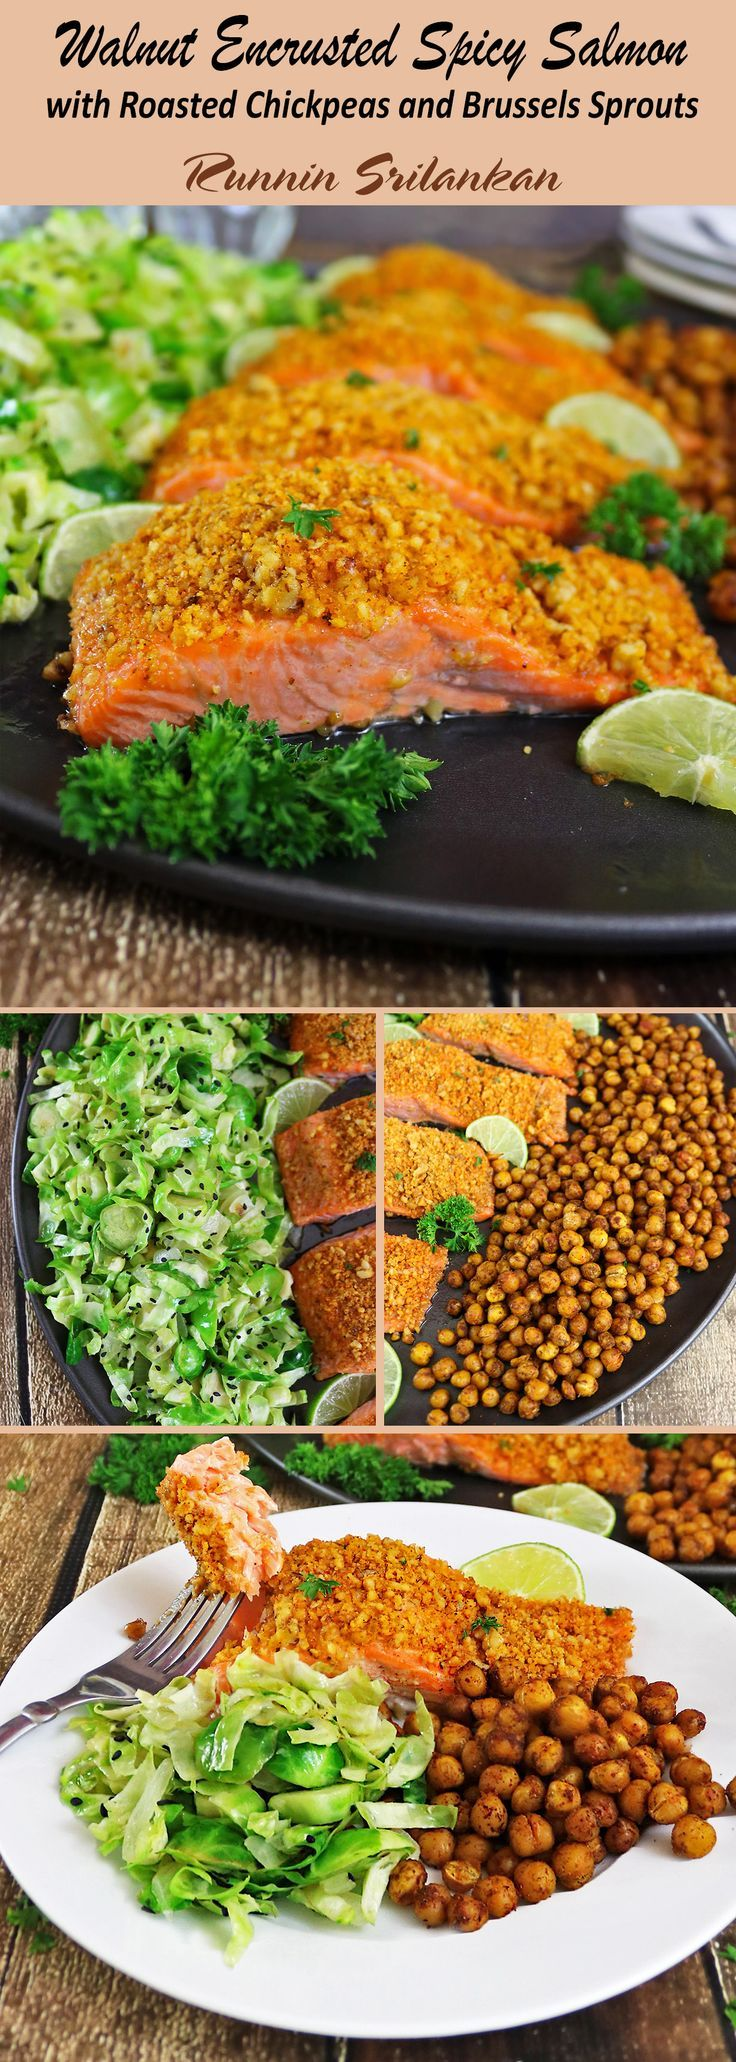 Walnut Encrusted Spicy Salmon with Roasted Chickpeas and Brussels Sprouts #ad #BeHeartHealthy @qunolCoQ10